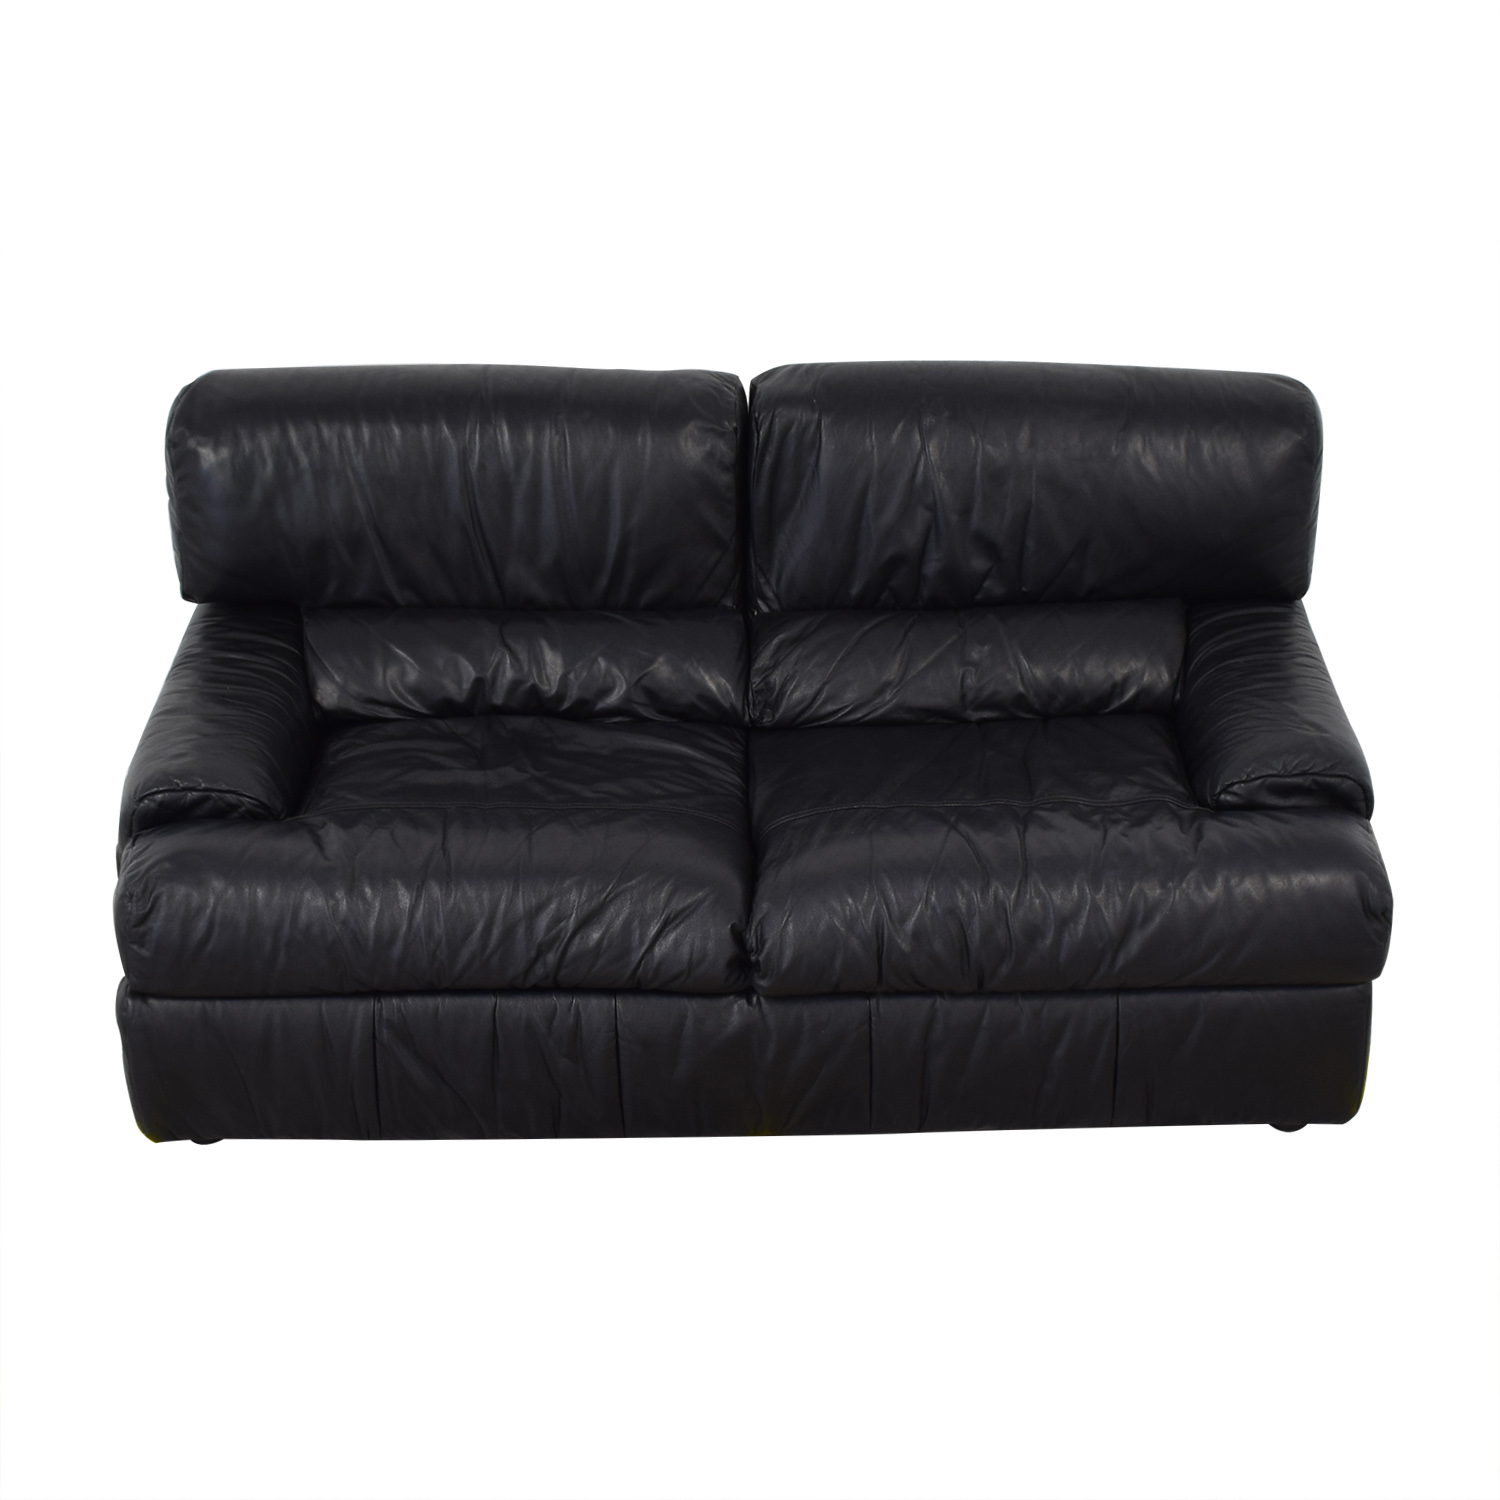 buy Natuzzi Black Leather Loveseat Natuzzi Sofas